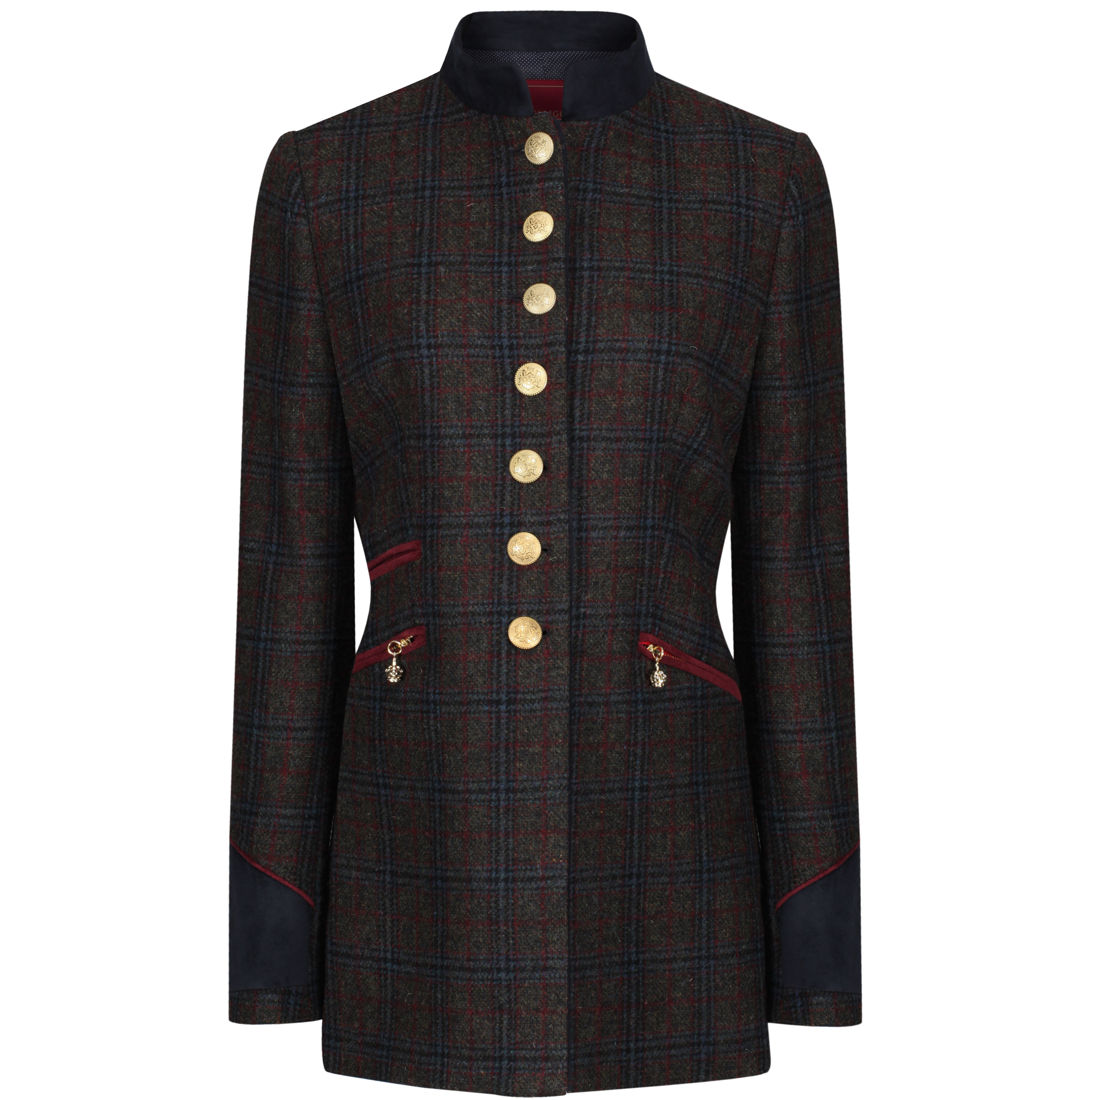 Welligogs Knightsbridge womens tailored jacket in navy & wine